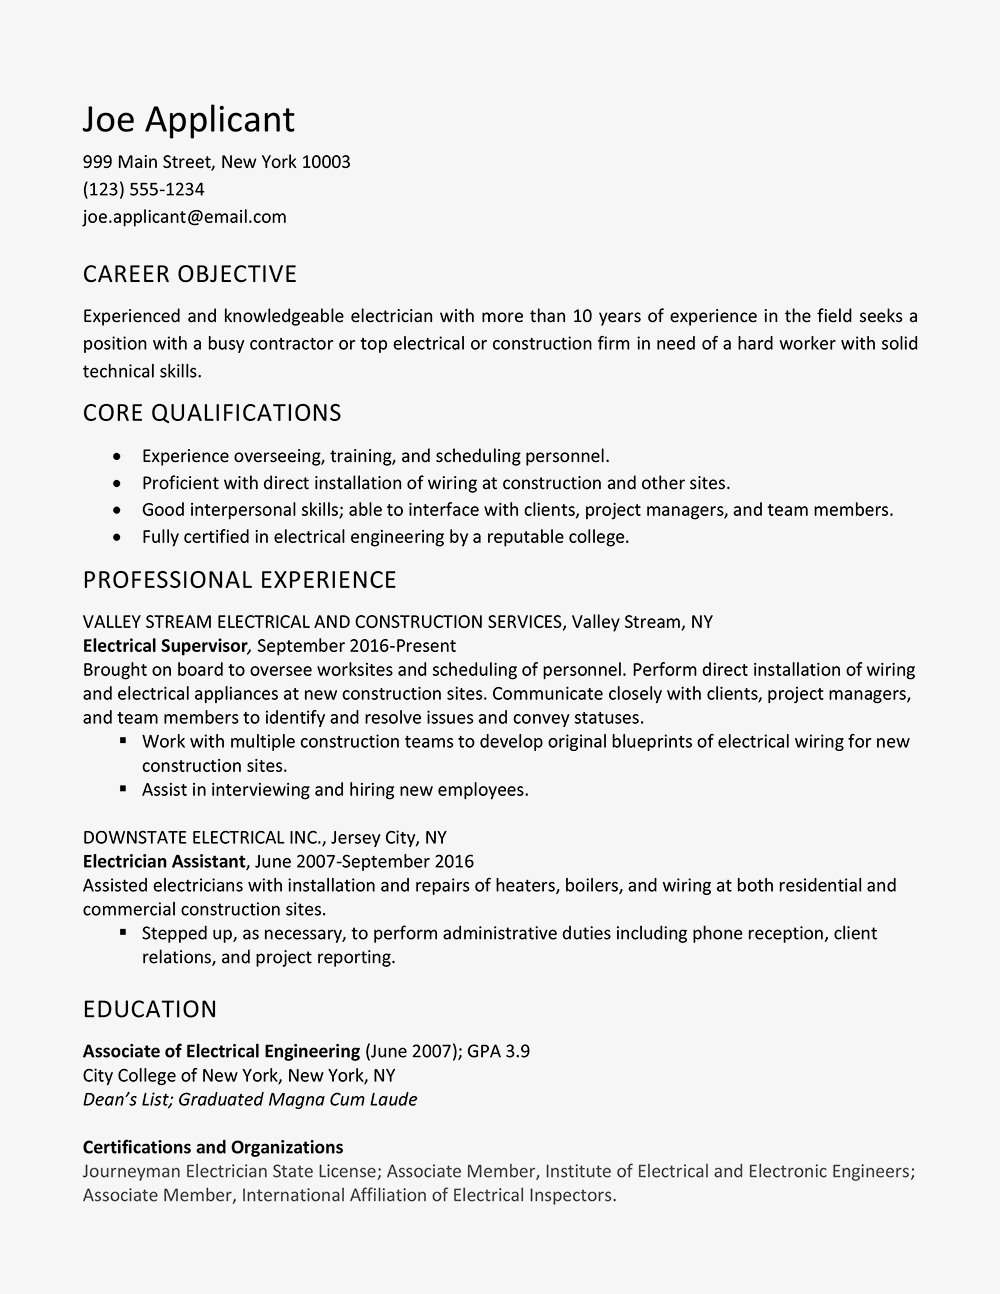 Sample Electrician Resume And Skills List Automotive Wiring General Guide For Electrical Troubleshooting